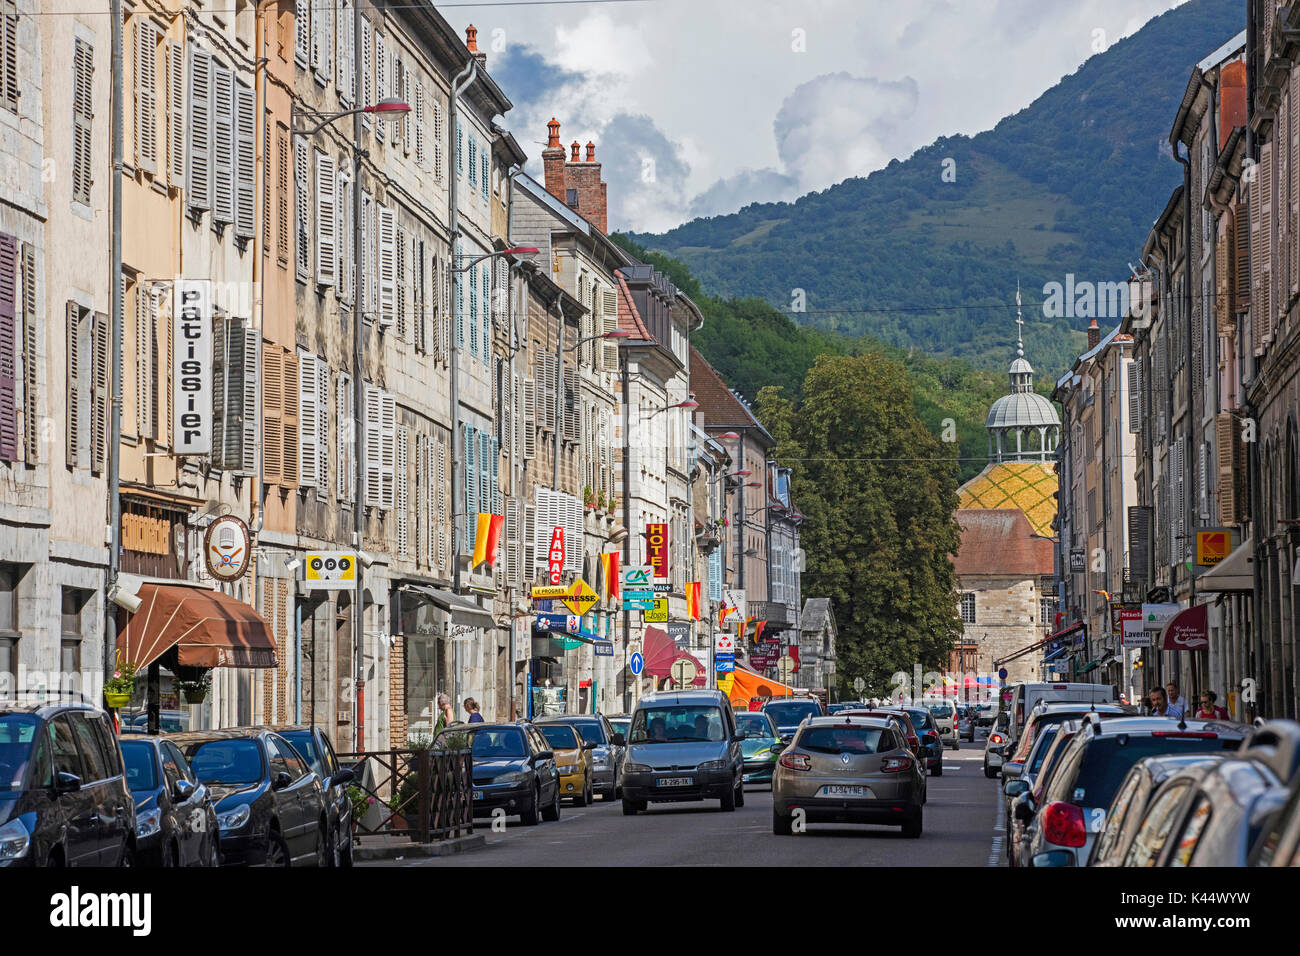 Old houses and shops in main street of the town Salins-les-Bains, commune in the Jura department in Franche-Comté, Lons-le-Saunier, France - Stock Image